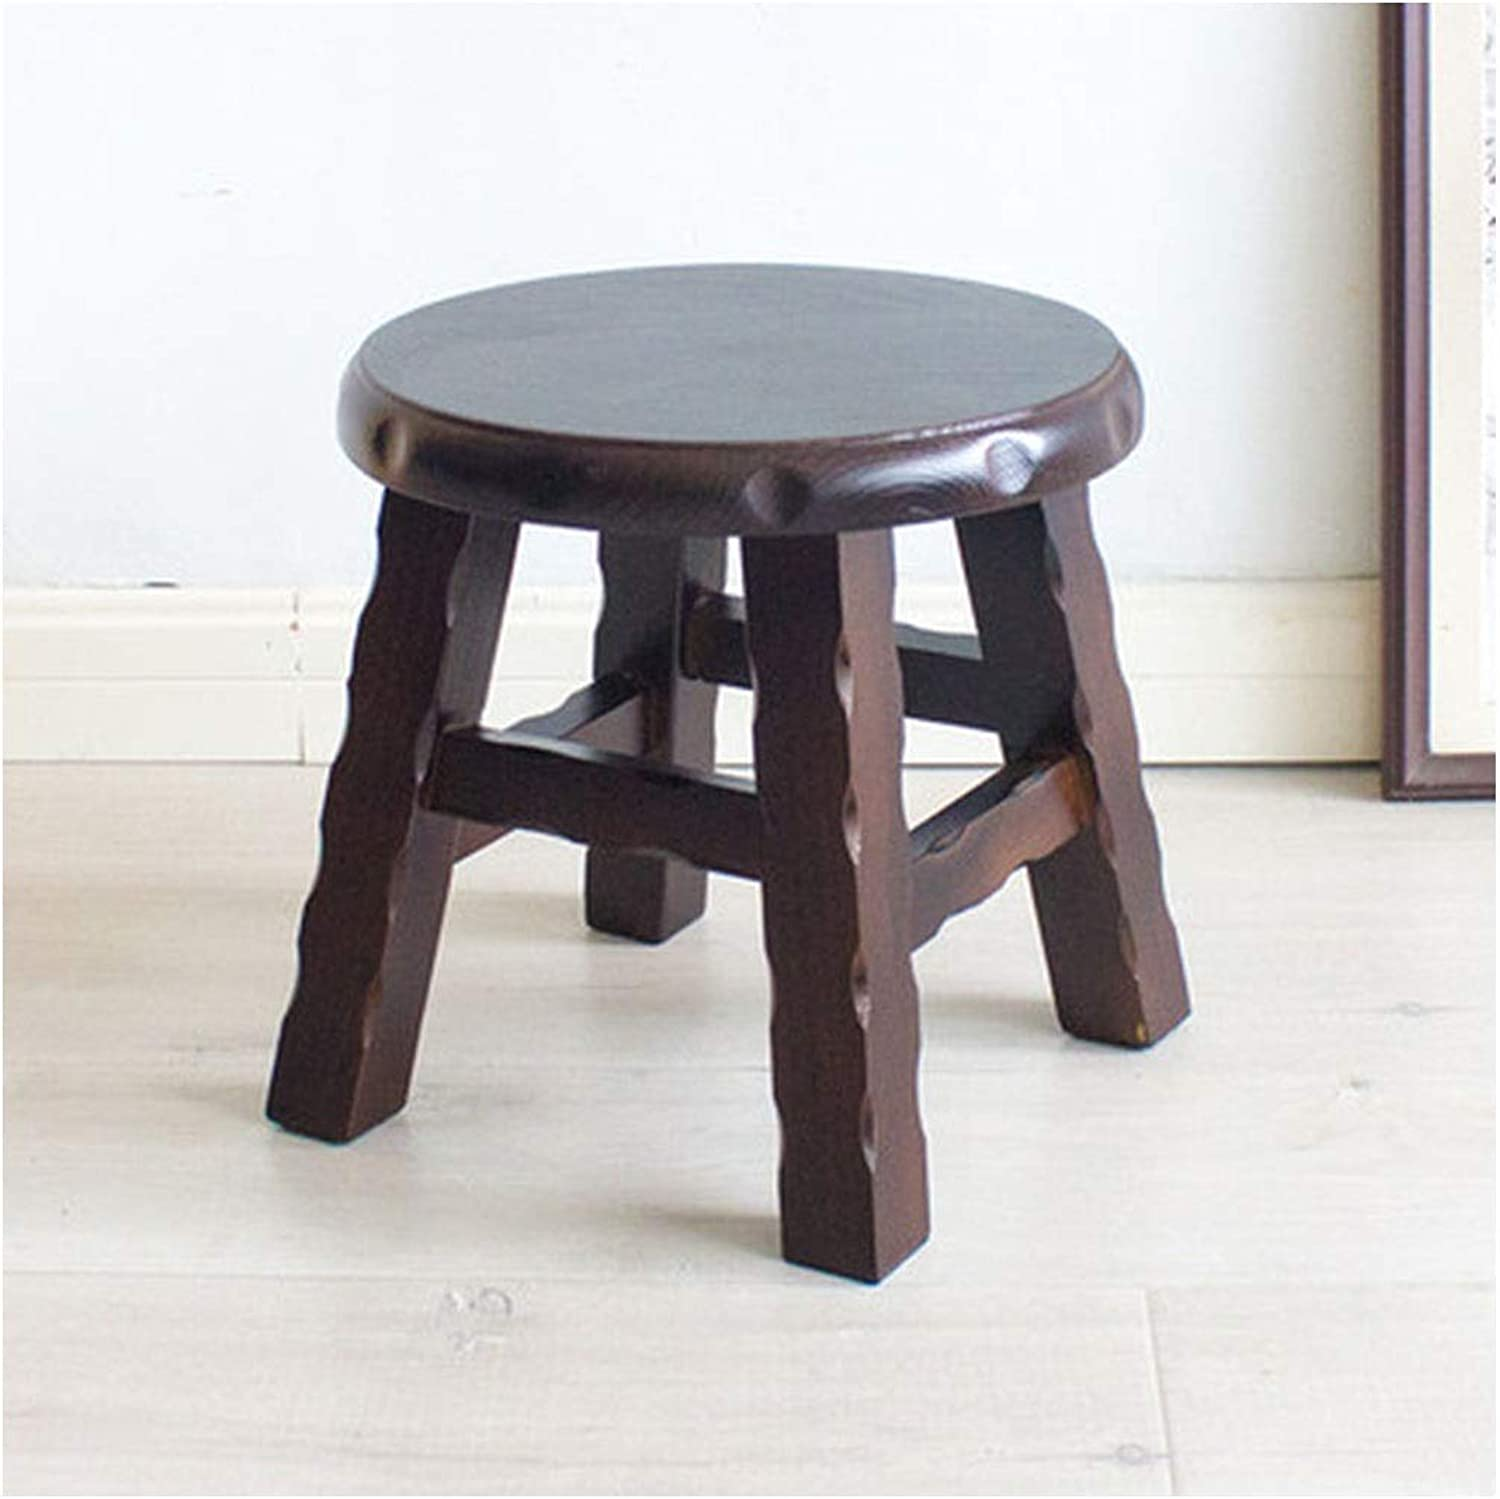 Stools- Wooden Bench- Round Stool Coffee Table Stool Bench Low Stool Living Room shoes Bench Small Wooden Bench HATHOR-23 (color   B)